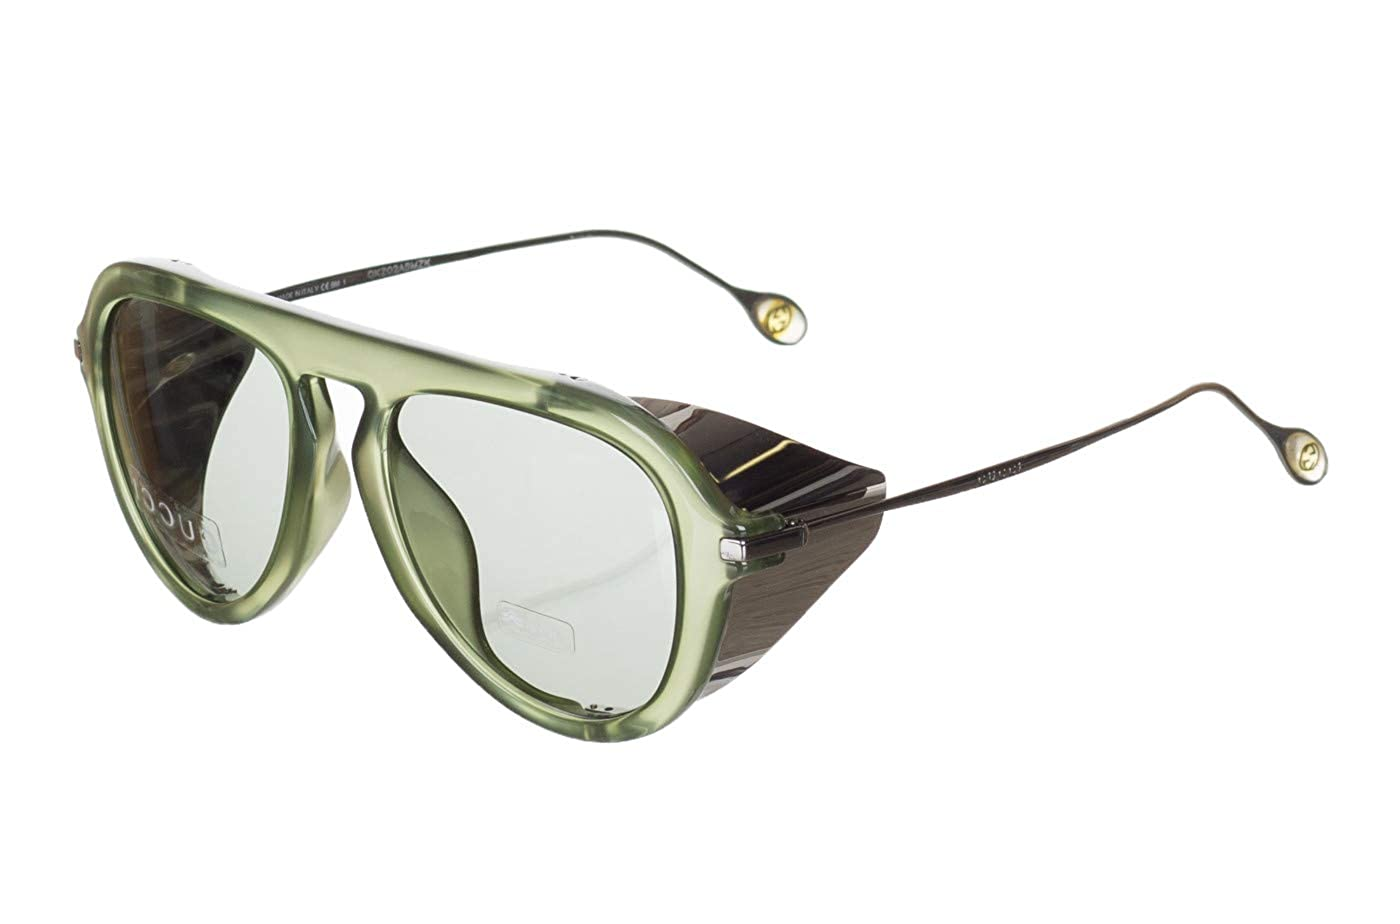 8d6ac7a83ec8 Amazon.com: Gucci GG Green 3737/S Gray Lens Side Shield Sunglasses: Clothing